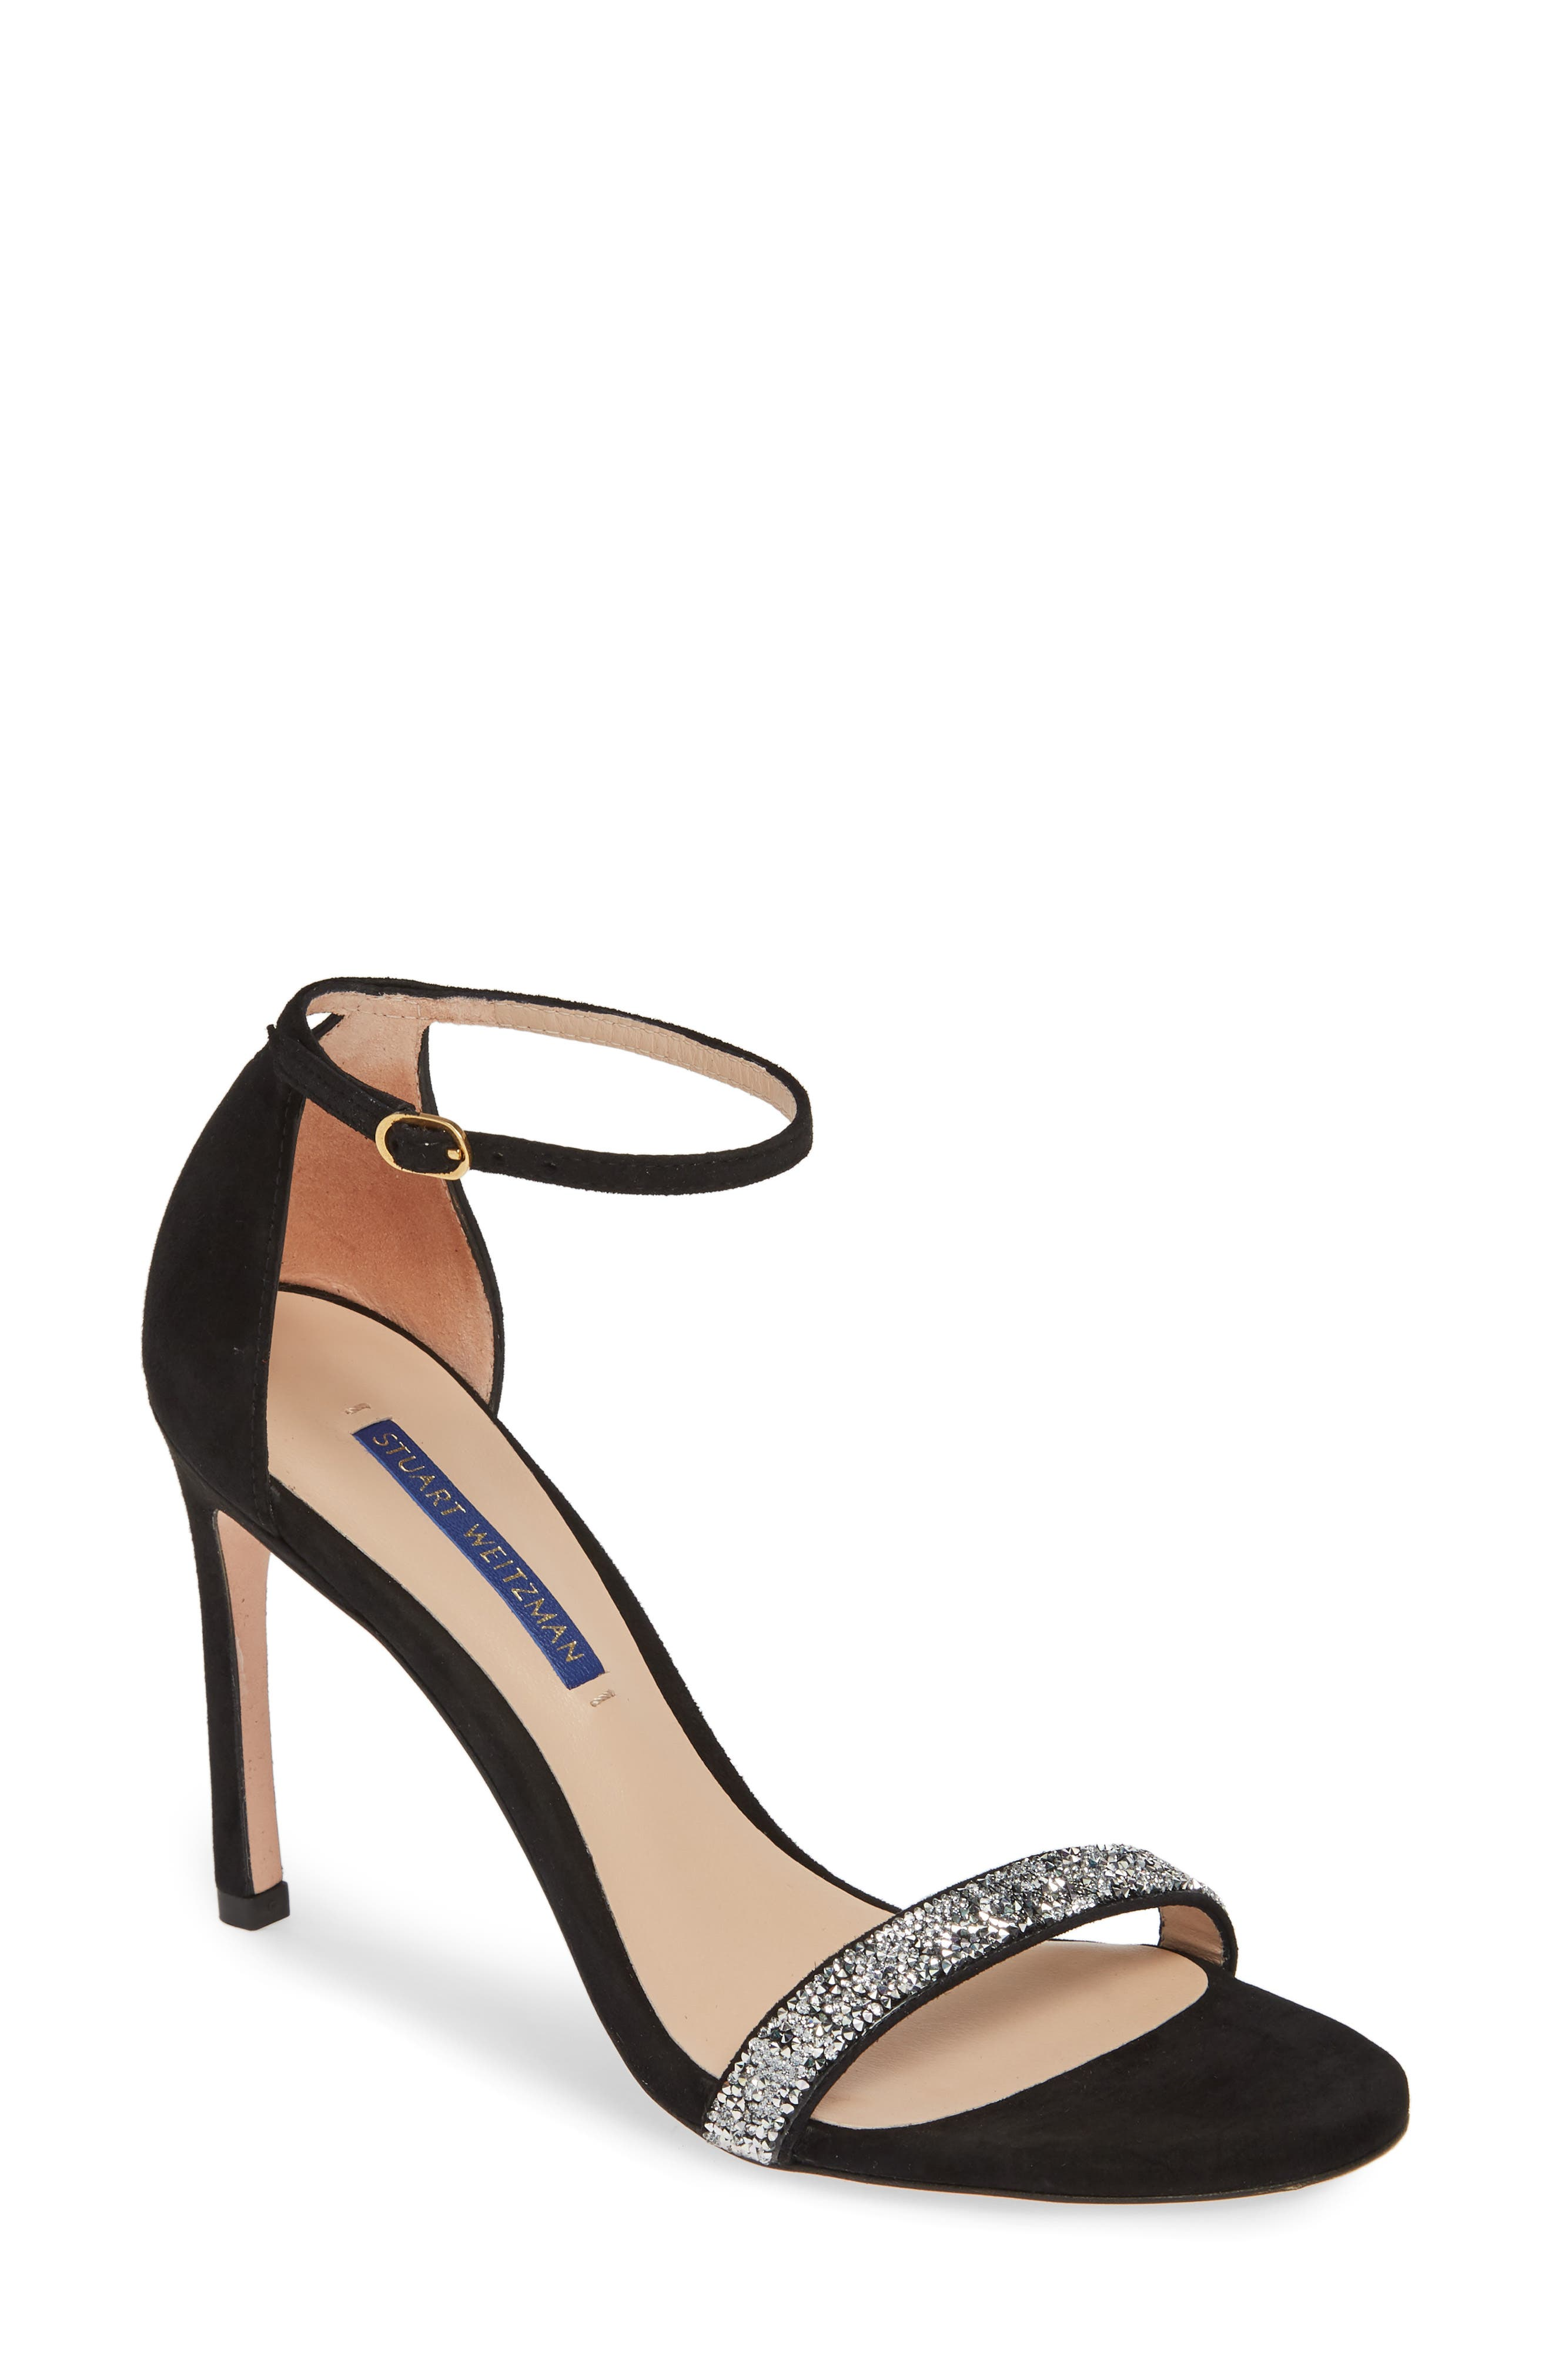 STUART WEITZMAN, Nudistsong Ankle Strap Sandal, Main thumbnail 1, color, BLACK